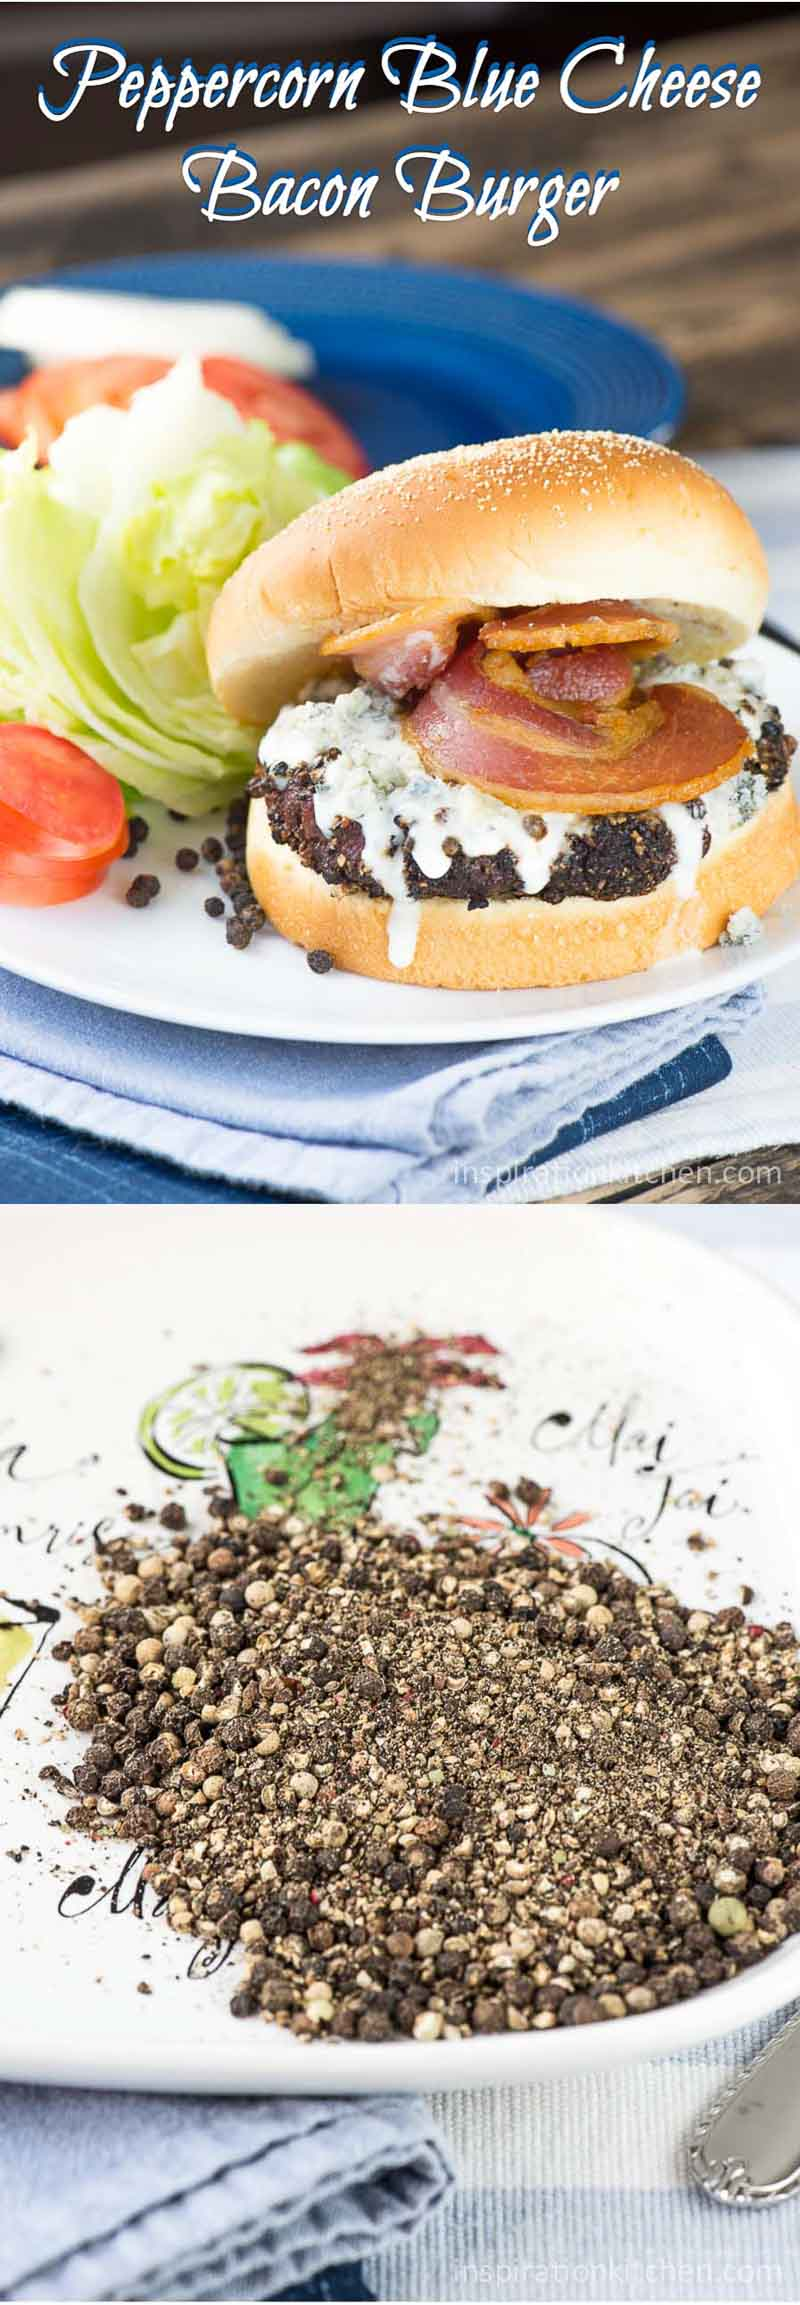 Peppercorn Blue Cheese Bacon Burger Collage | Inspiration Kitchen